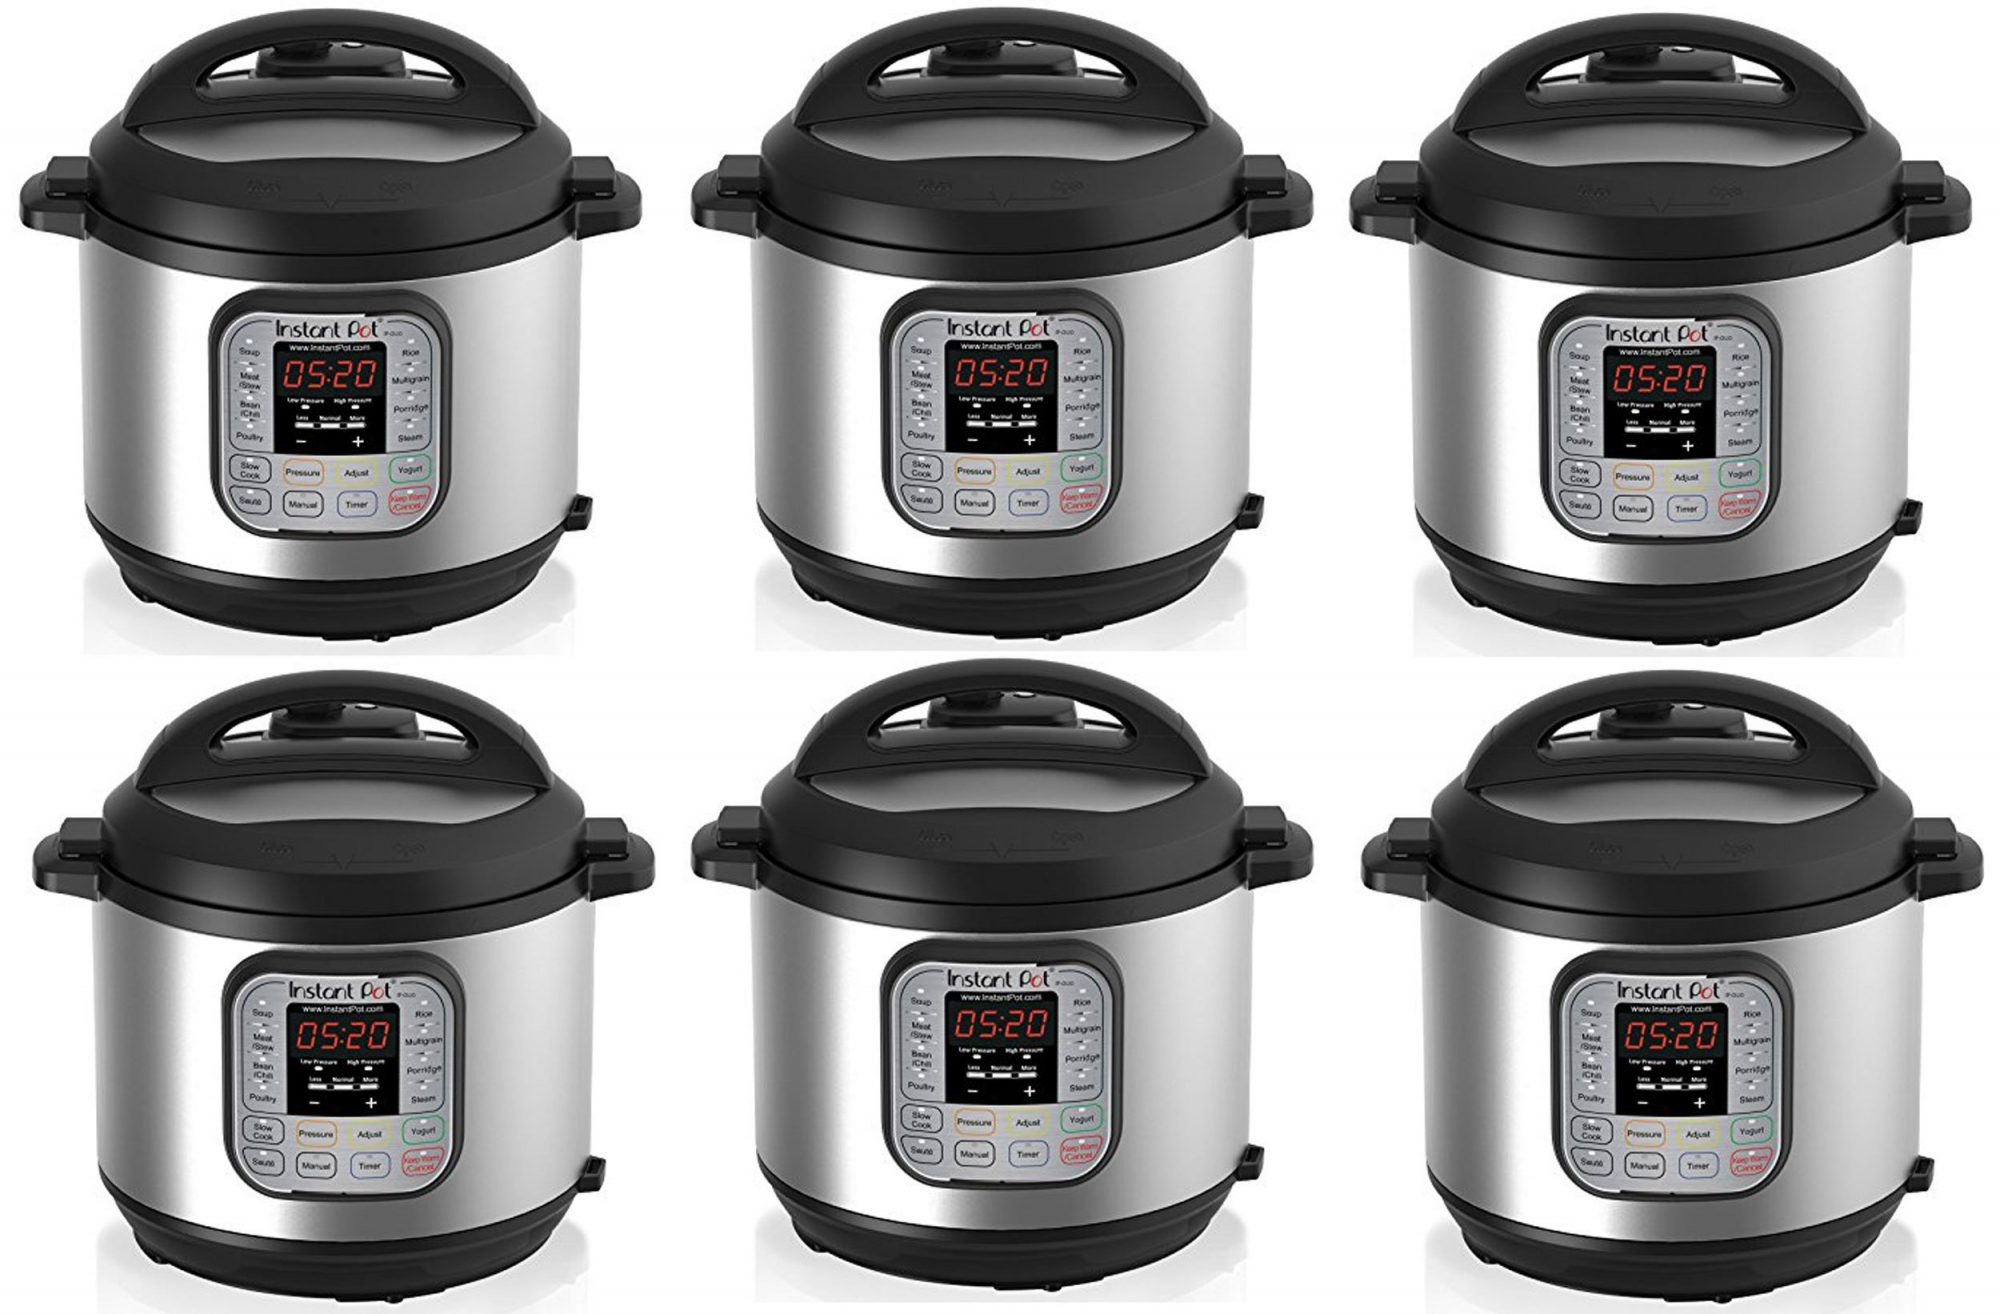 EC: You Can Get an Instant Pot for 30% Off Today